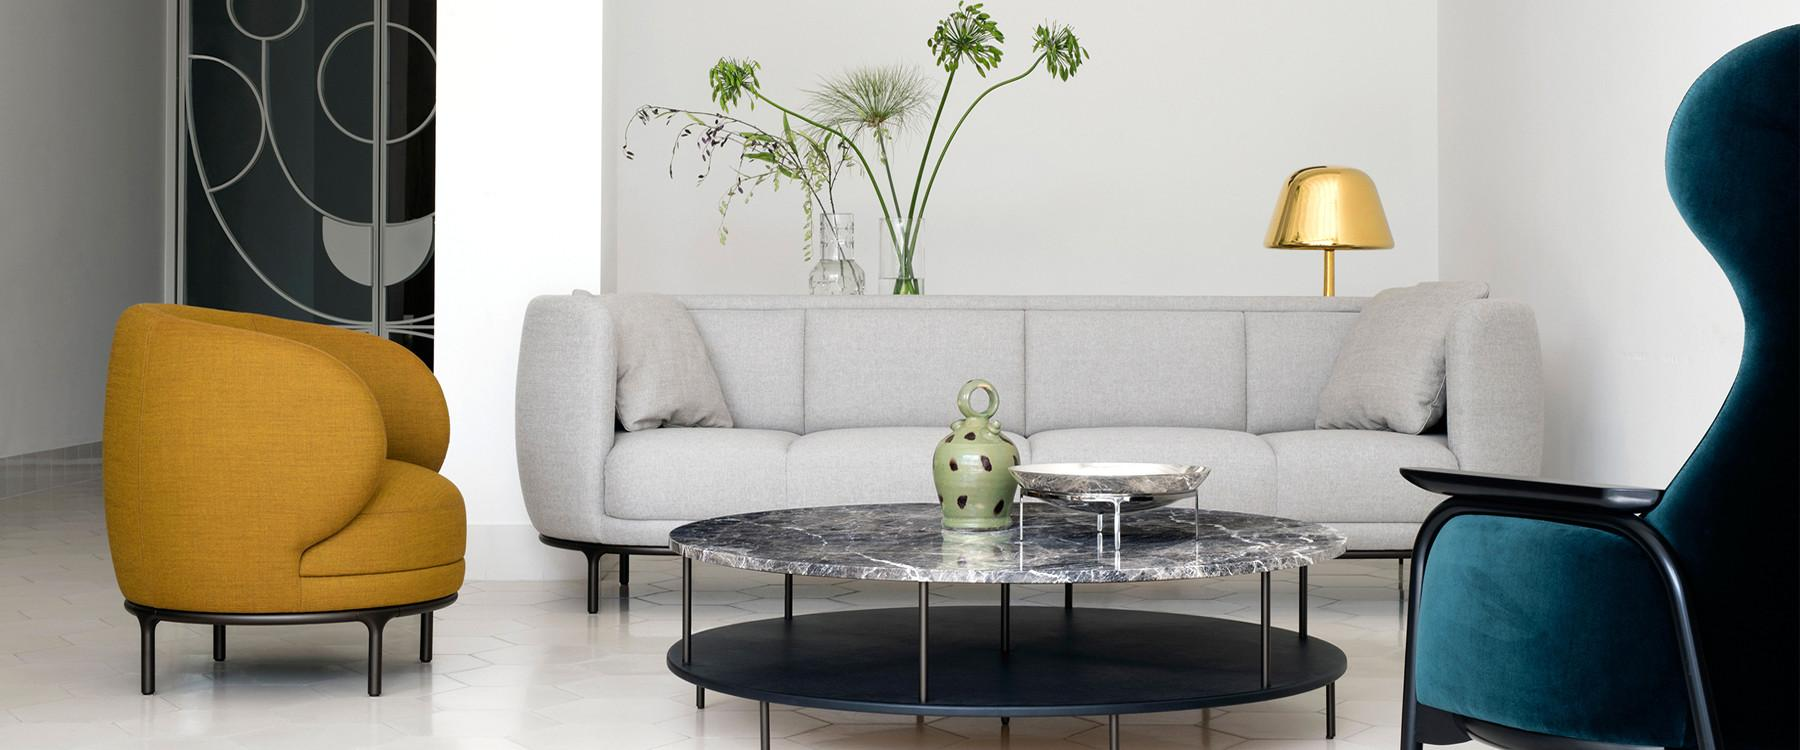 Designer Jaime Hayon Debuts Furniture Collection 70s